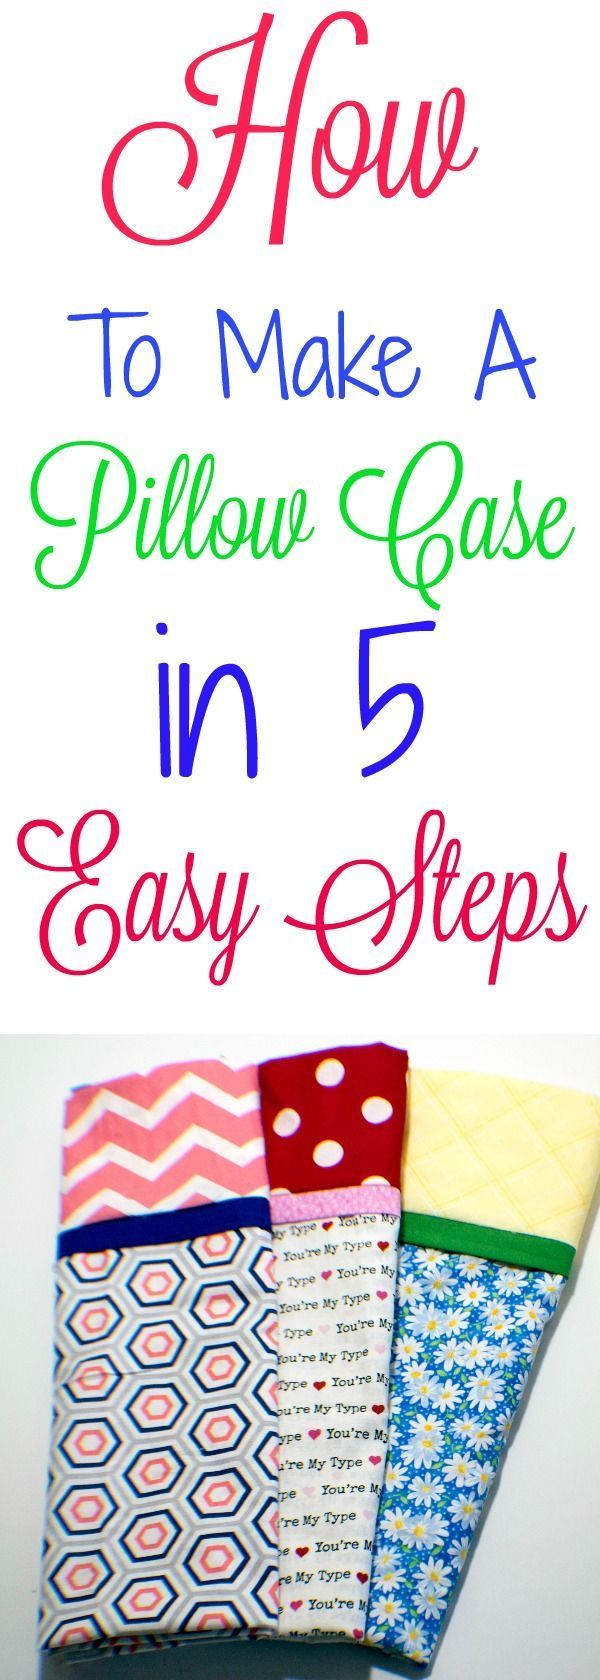 pillows tutorial sew sewing